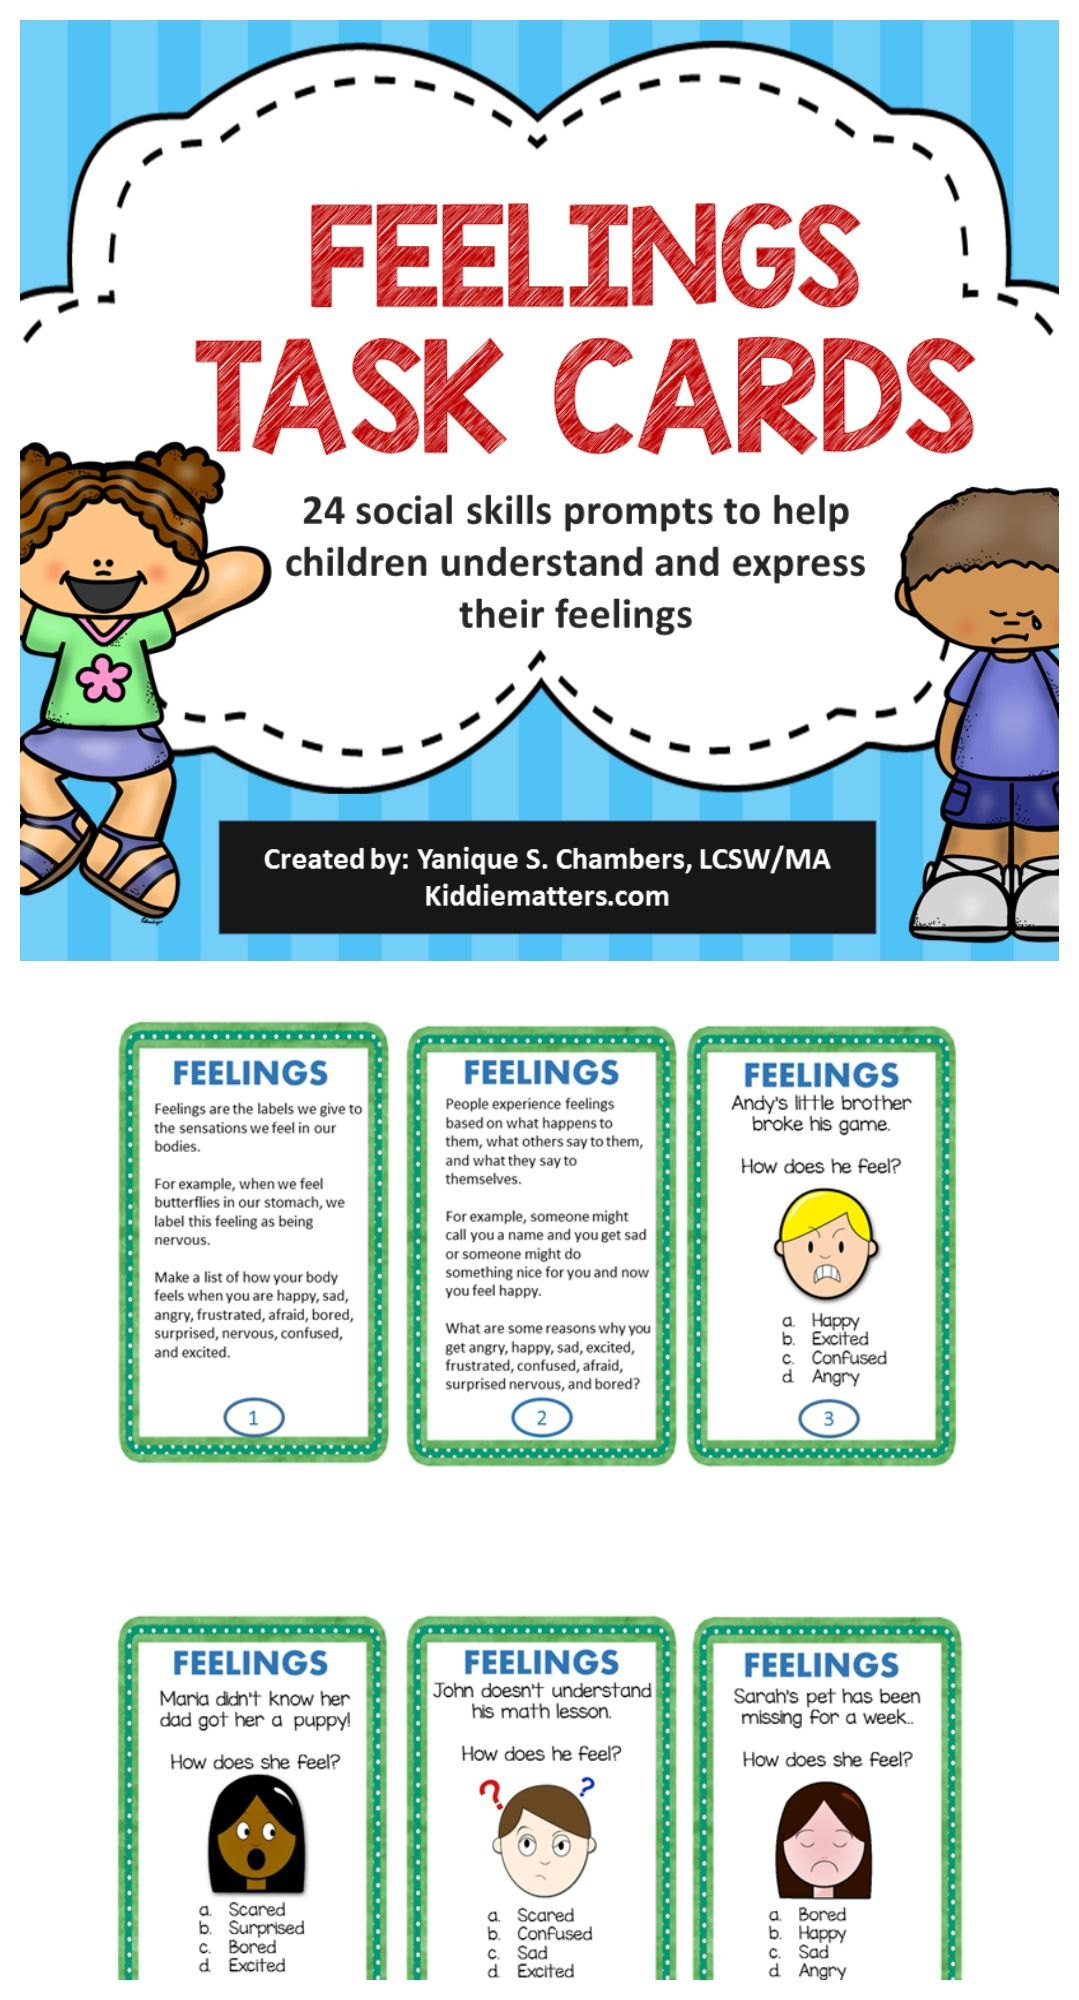 Feelings Task Cards To Help Children Develop Emotion Regulation Skills This Product Contains 24